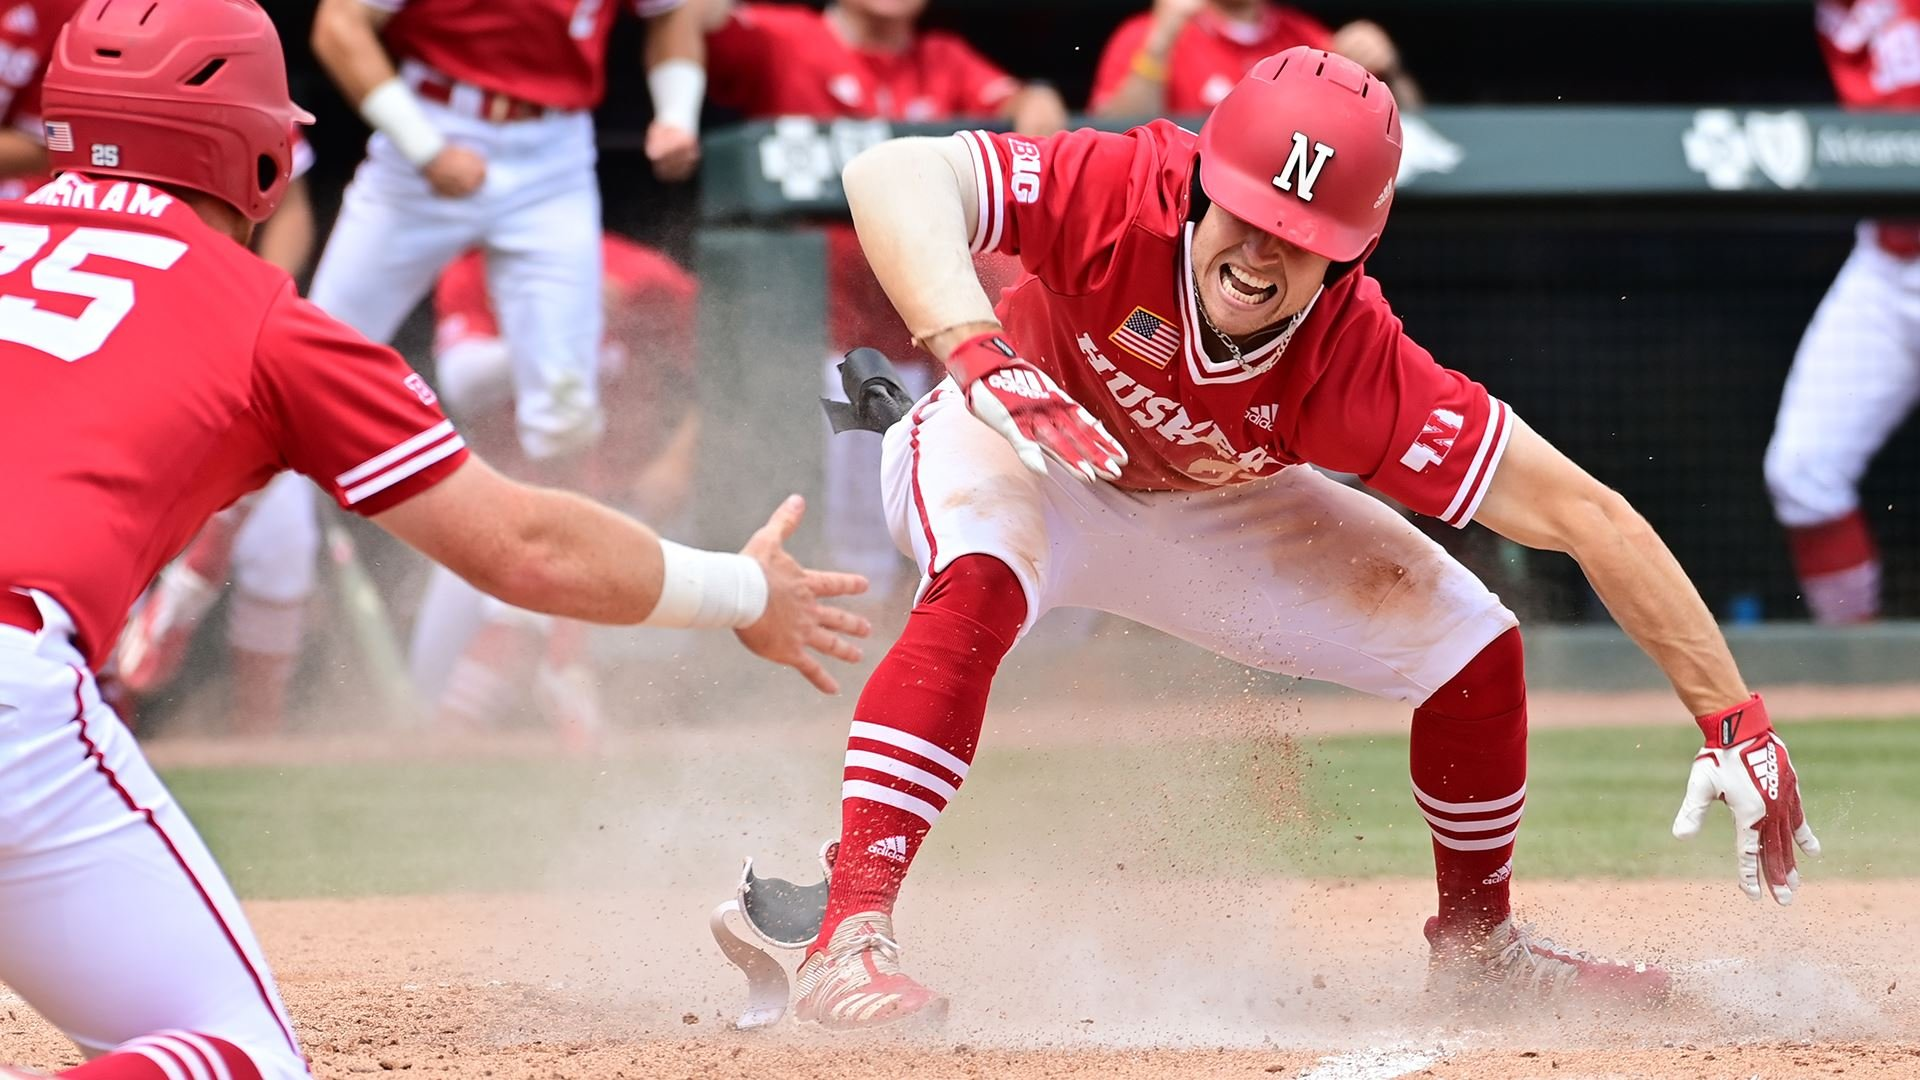 Huskers Advance to Regional Final with 18-4 Win